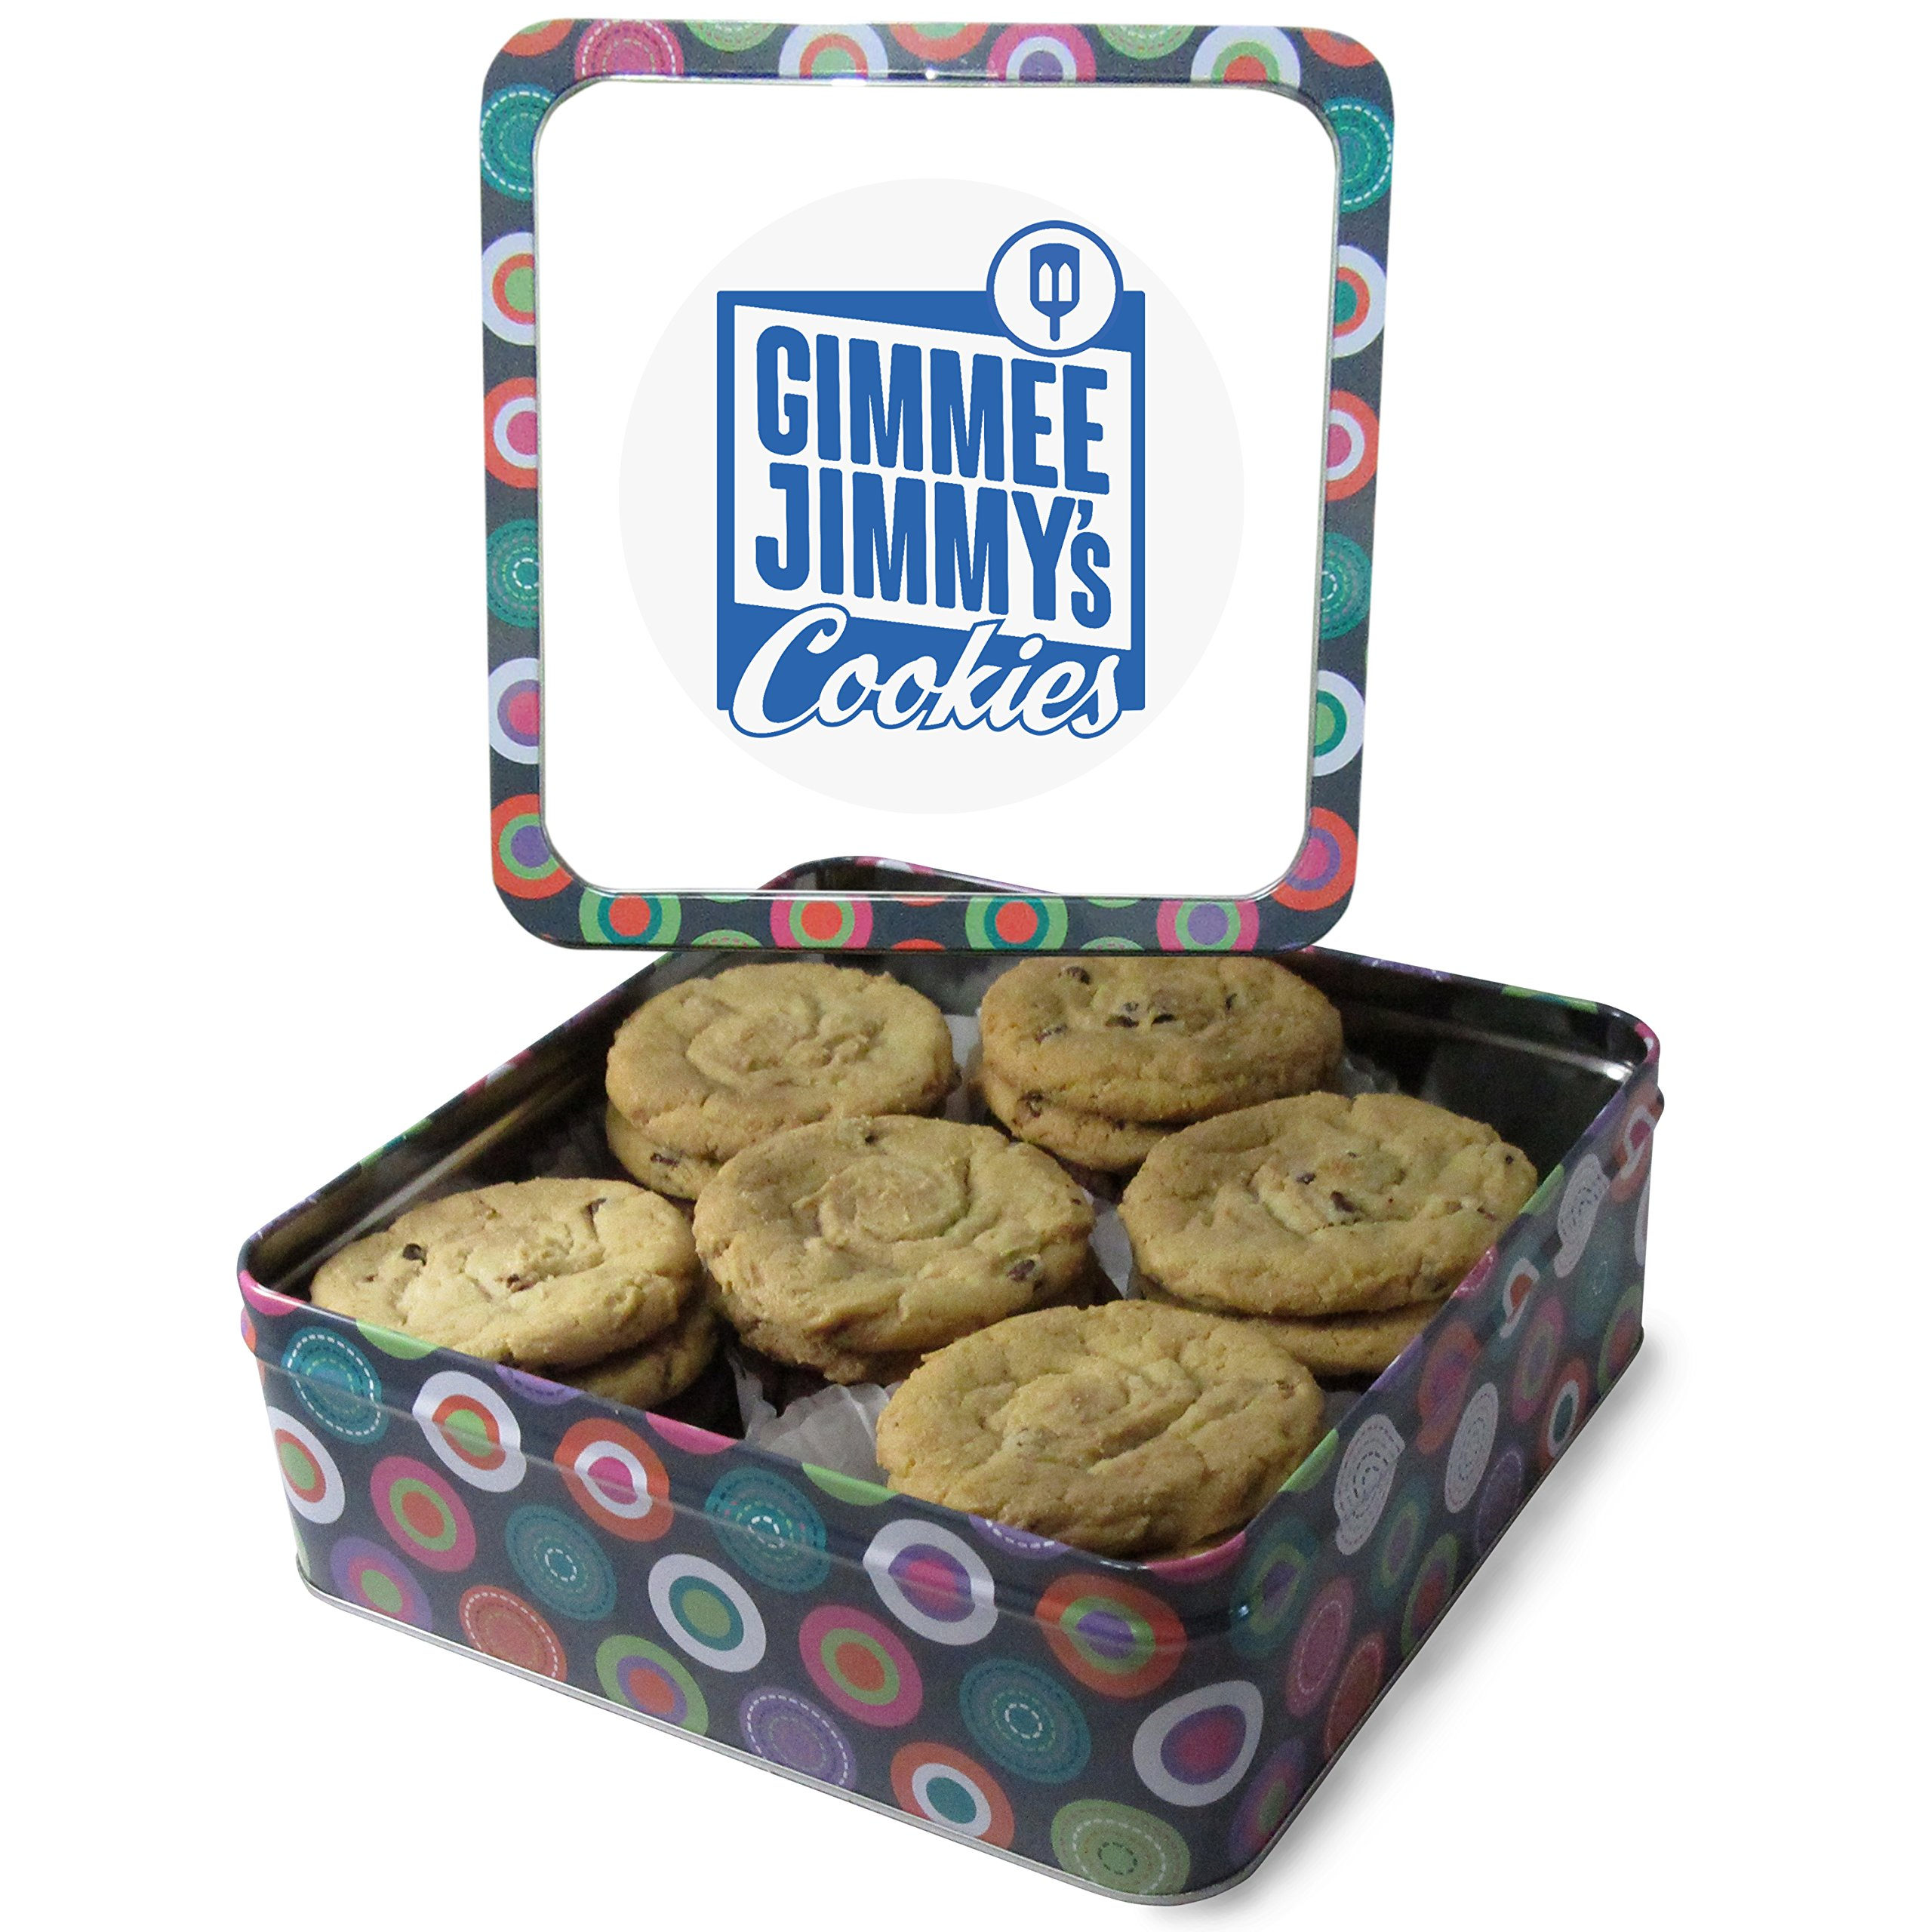 Fresh Baked Chocolate Chip Cookie Tins, Comes in Multiple Sizes | Gimmee Jimmy's Authentic Cookies-2 Pound Tin